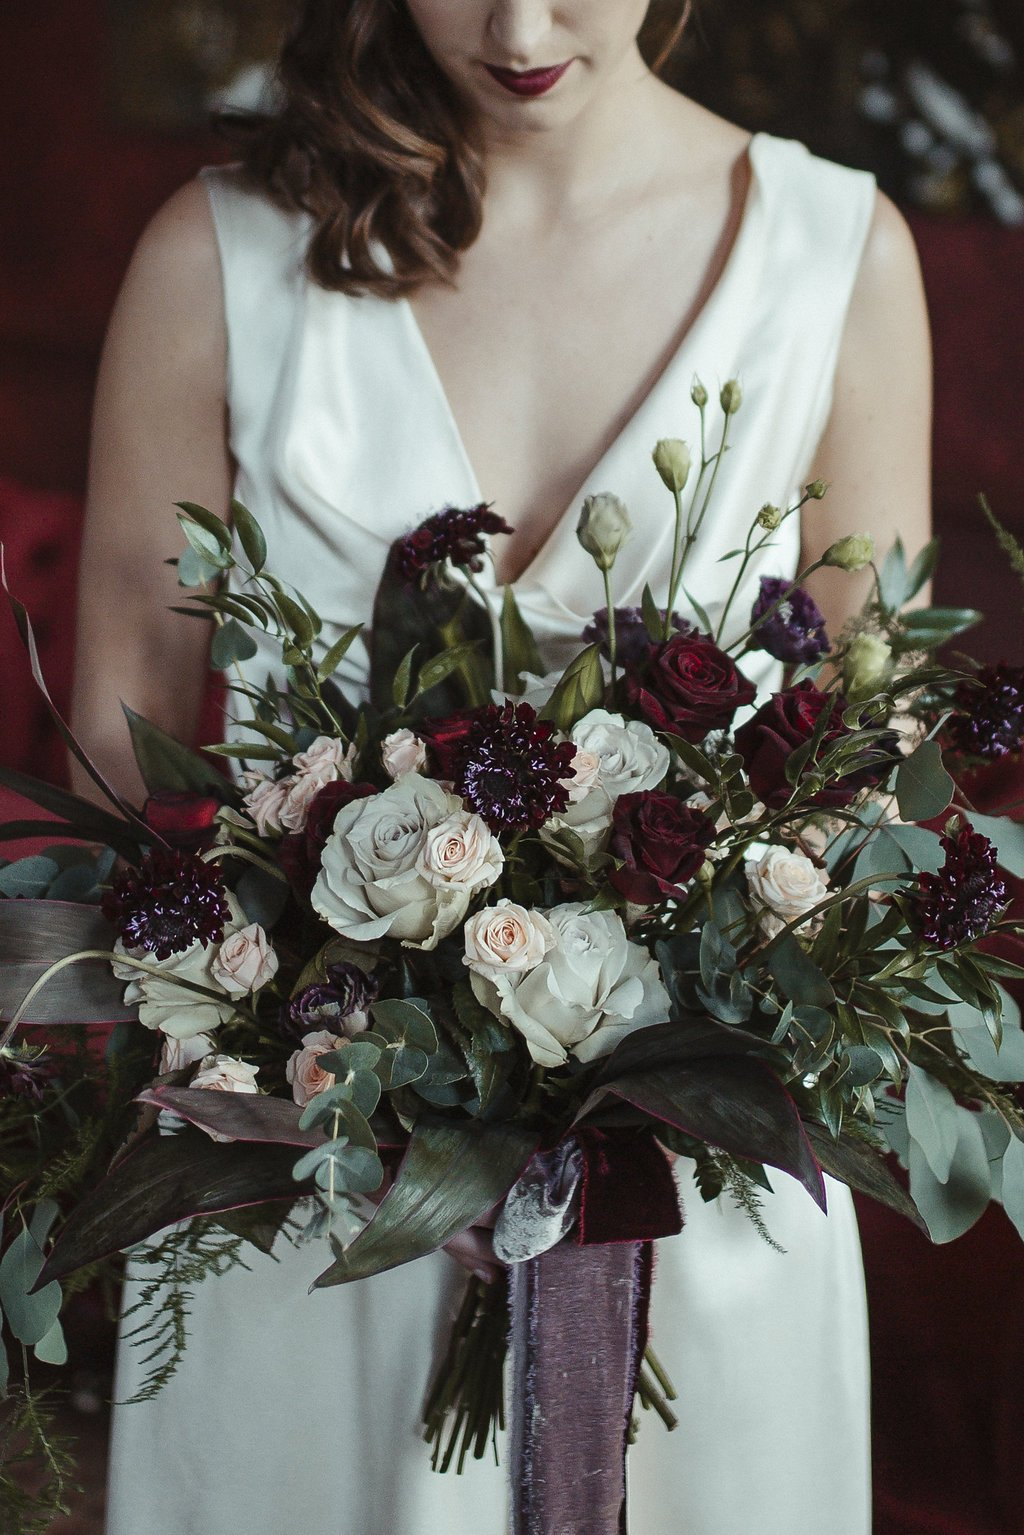 winter bridal bouquet, regal wedding inspiration, regal bride and groom, modern wedding, elegant wedding, beautiful wedding, sumptuous wedding, luxe wedding, surrey wedding, sussex wedding, hampshire wedding, london wedding, wedding ideas, wedding inspiration